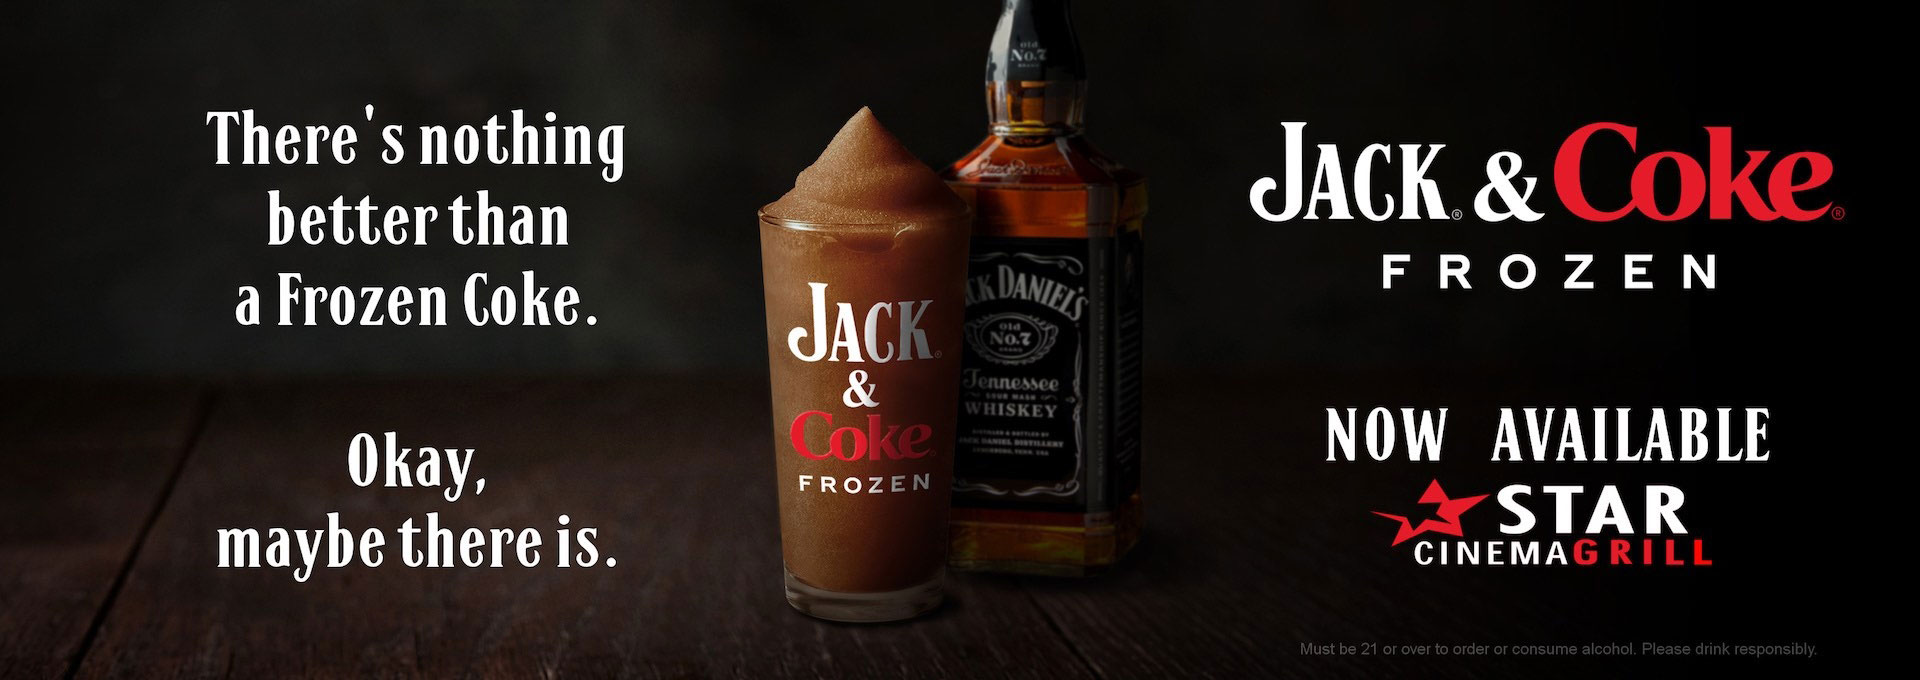 Jack and Coke image